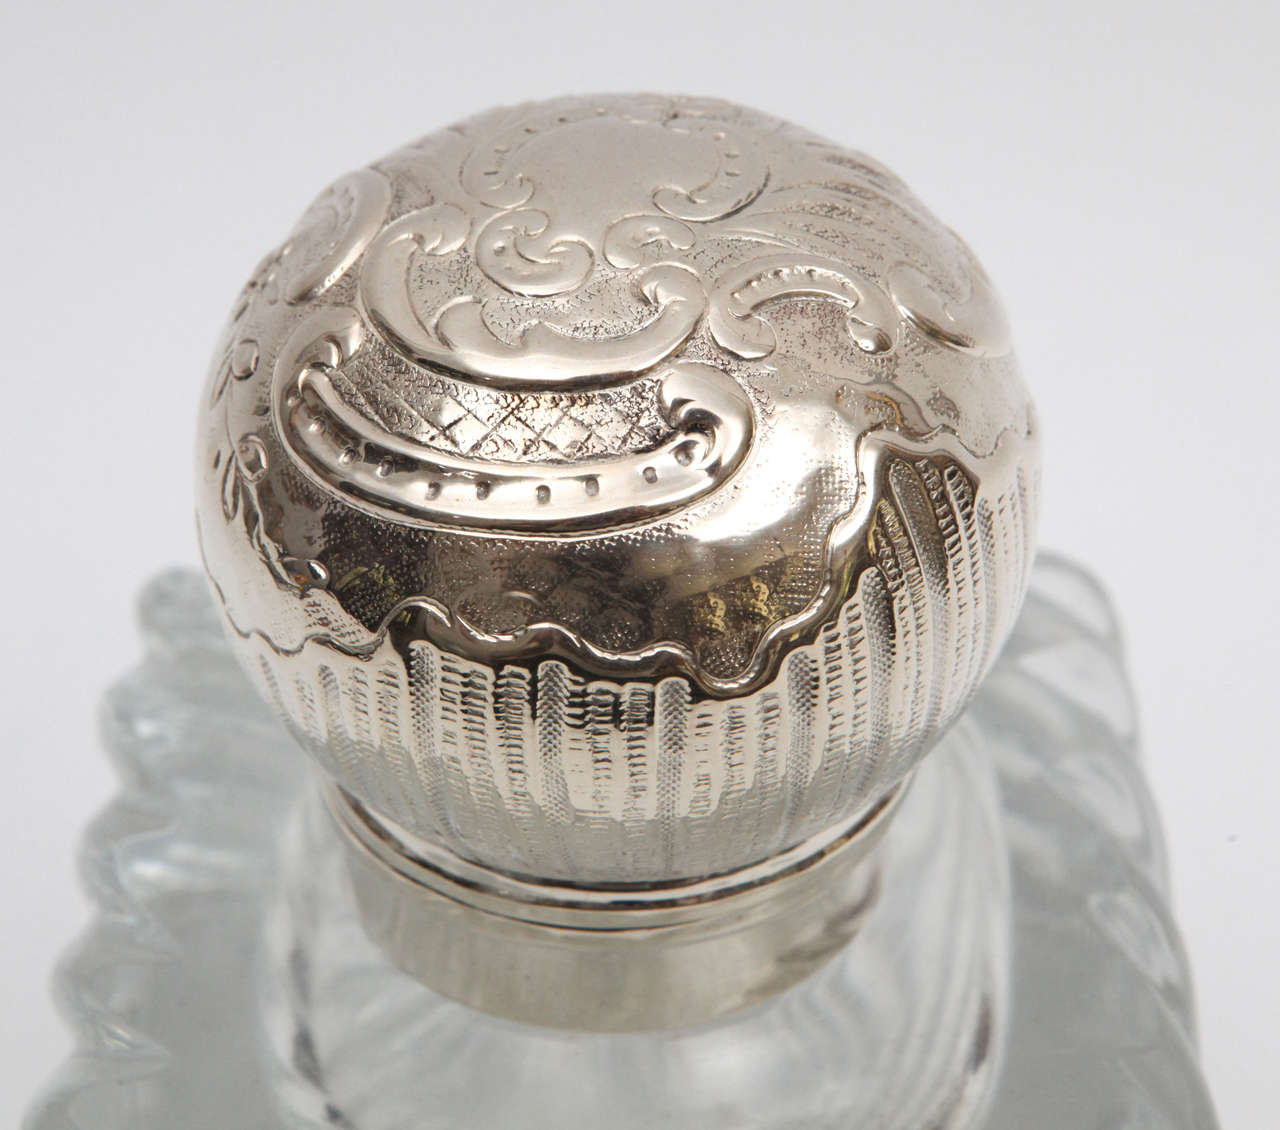 1900s English Crystal and Silver Plated Sheffield Inkwell on Tray For Sale 3